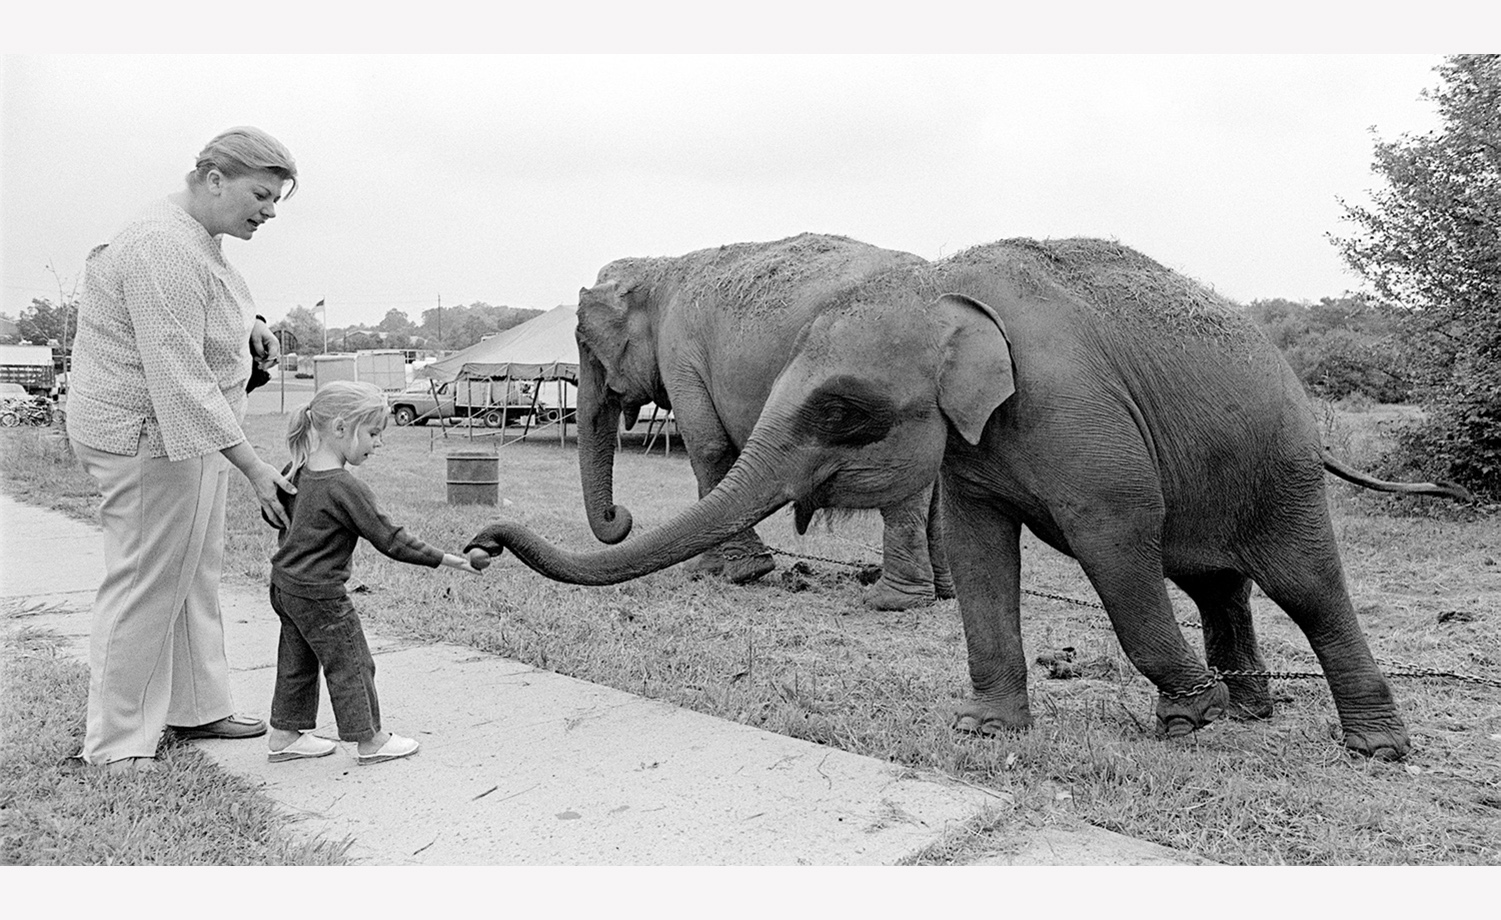 Feeding the Elephant New Jersey 1975